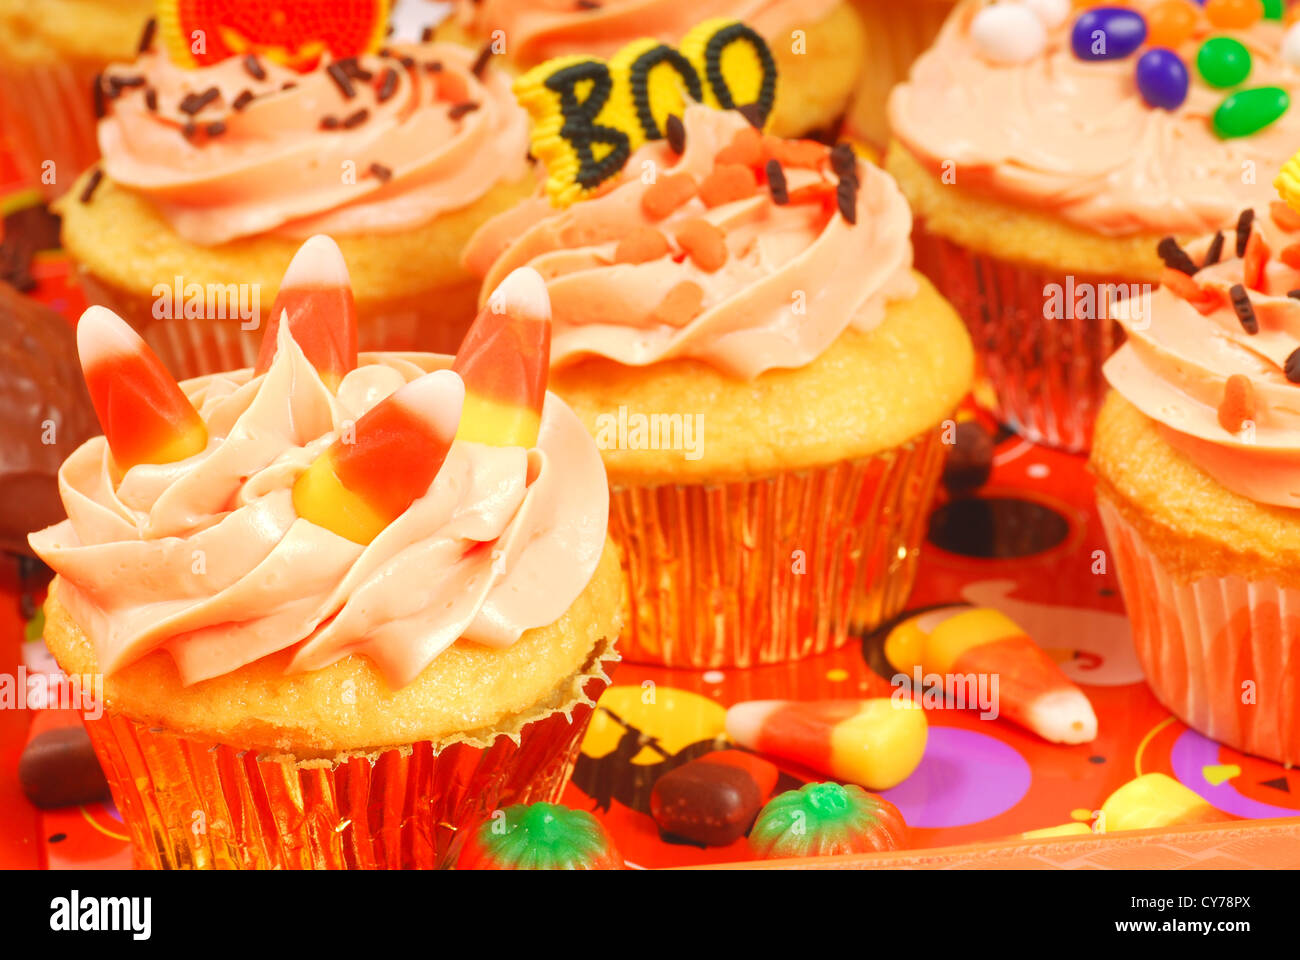 delicious halloween cupcakes presented on a serving tray